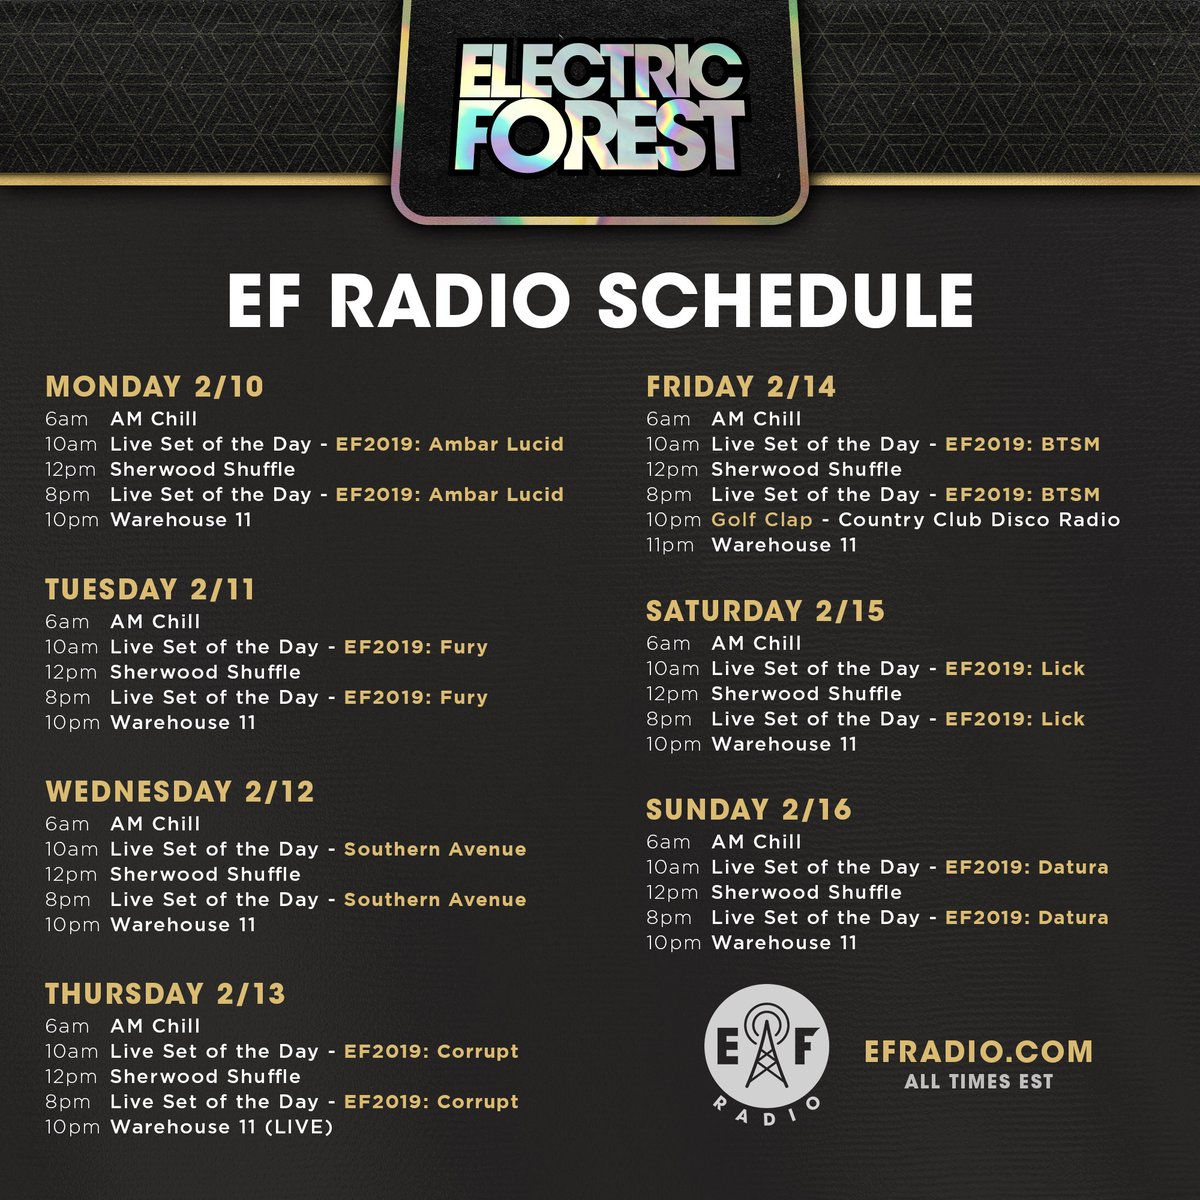 This week on @EForestRadio!   Tune in and hear #EF2019 Sets from @AmbarLucid, @OfficialBTSM, @Fury_Jungle and others, plus daily broadcasts of the Sherwood Shuffle and more...   Hear it 24/7/365 at http://EFRadio.com !pic.twitter.com/Ubsj92xvyj